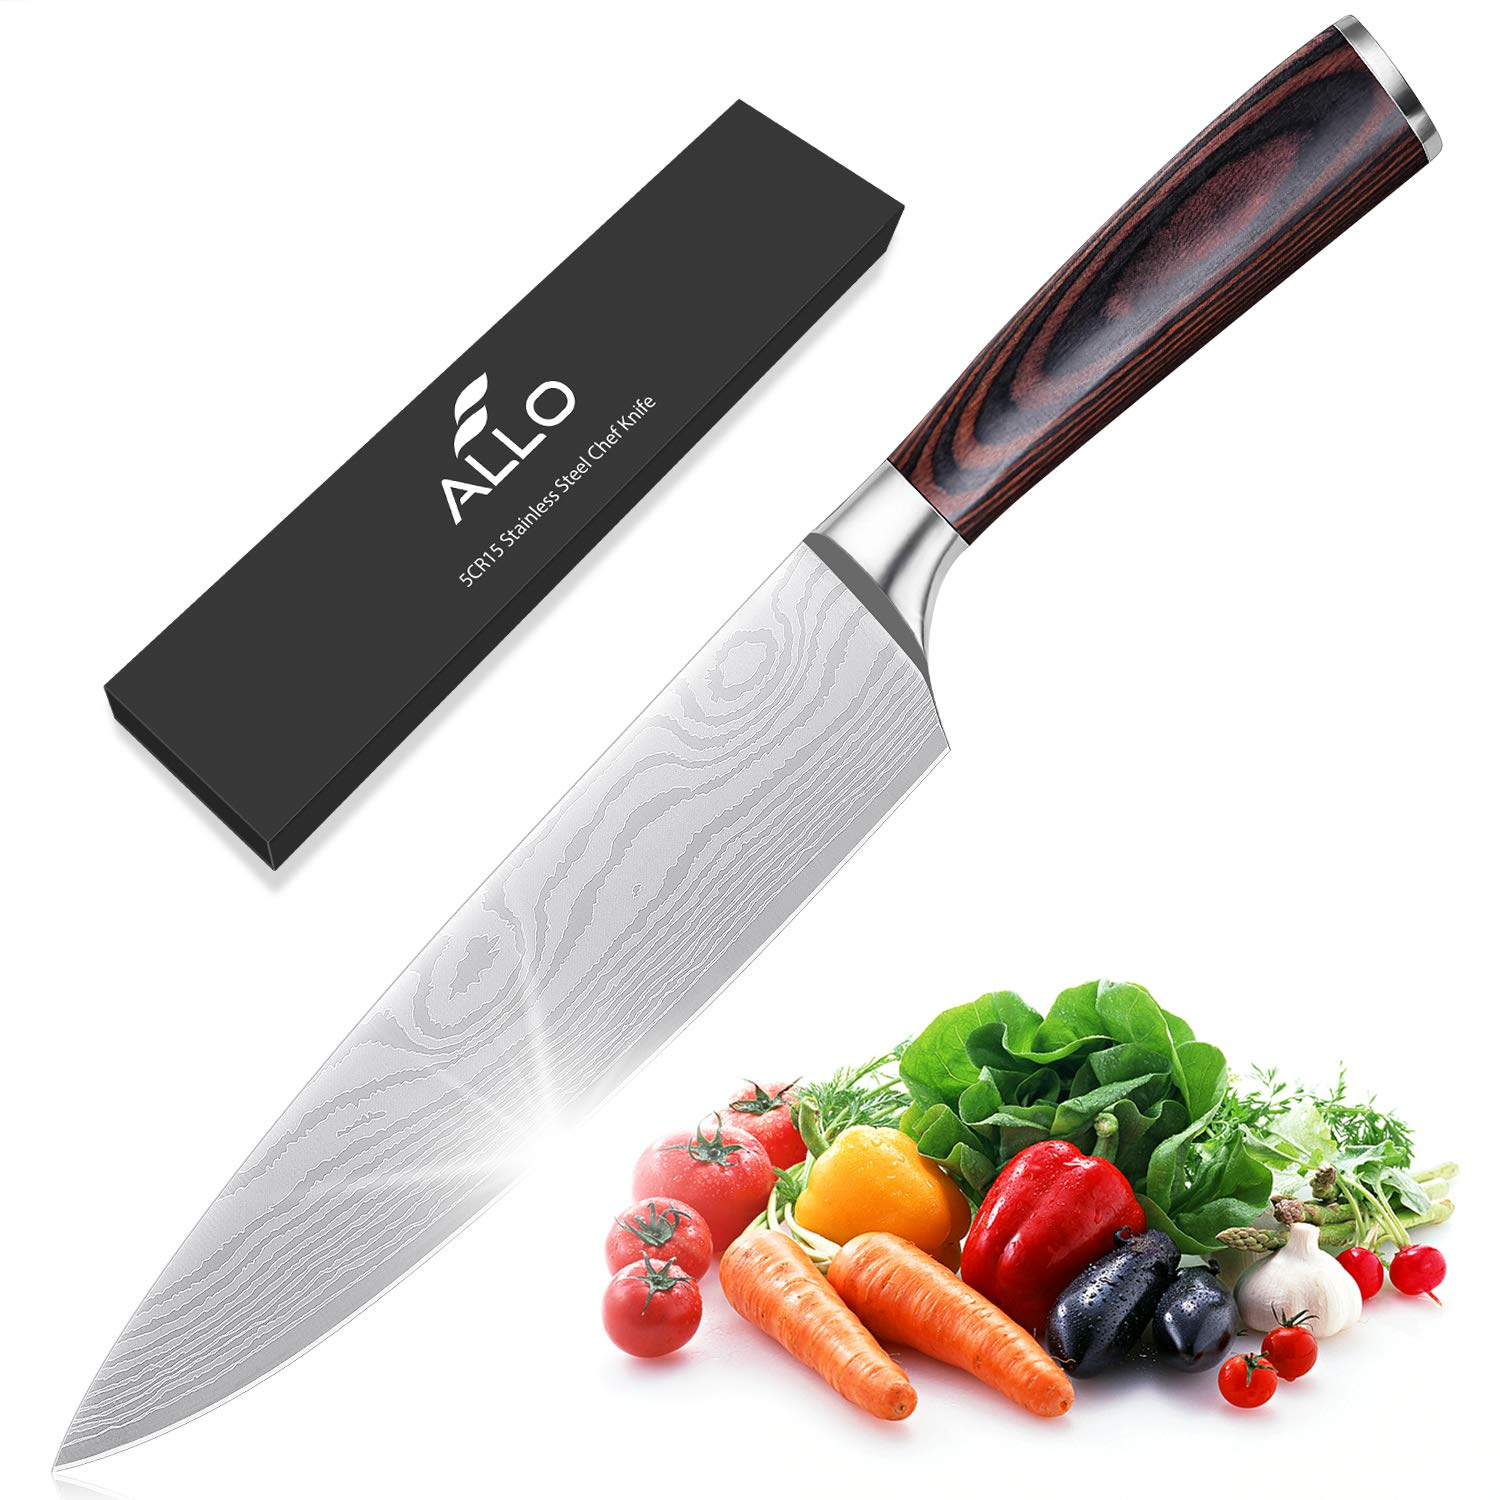 Allo Chef's Knife 8 Inch High Carbon Stainless Steel Sharp Kitchen Knife with Ergonomic Handle, Anti-rust, Durable, Professional for Home and Restaurant